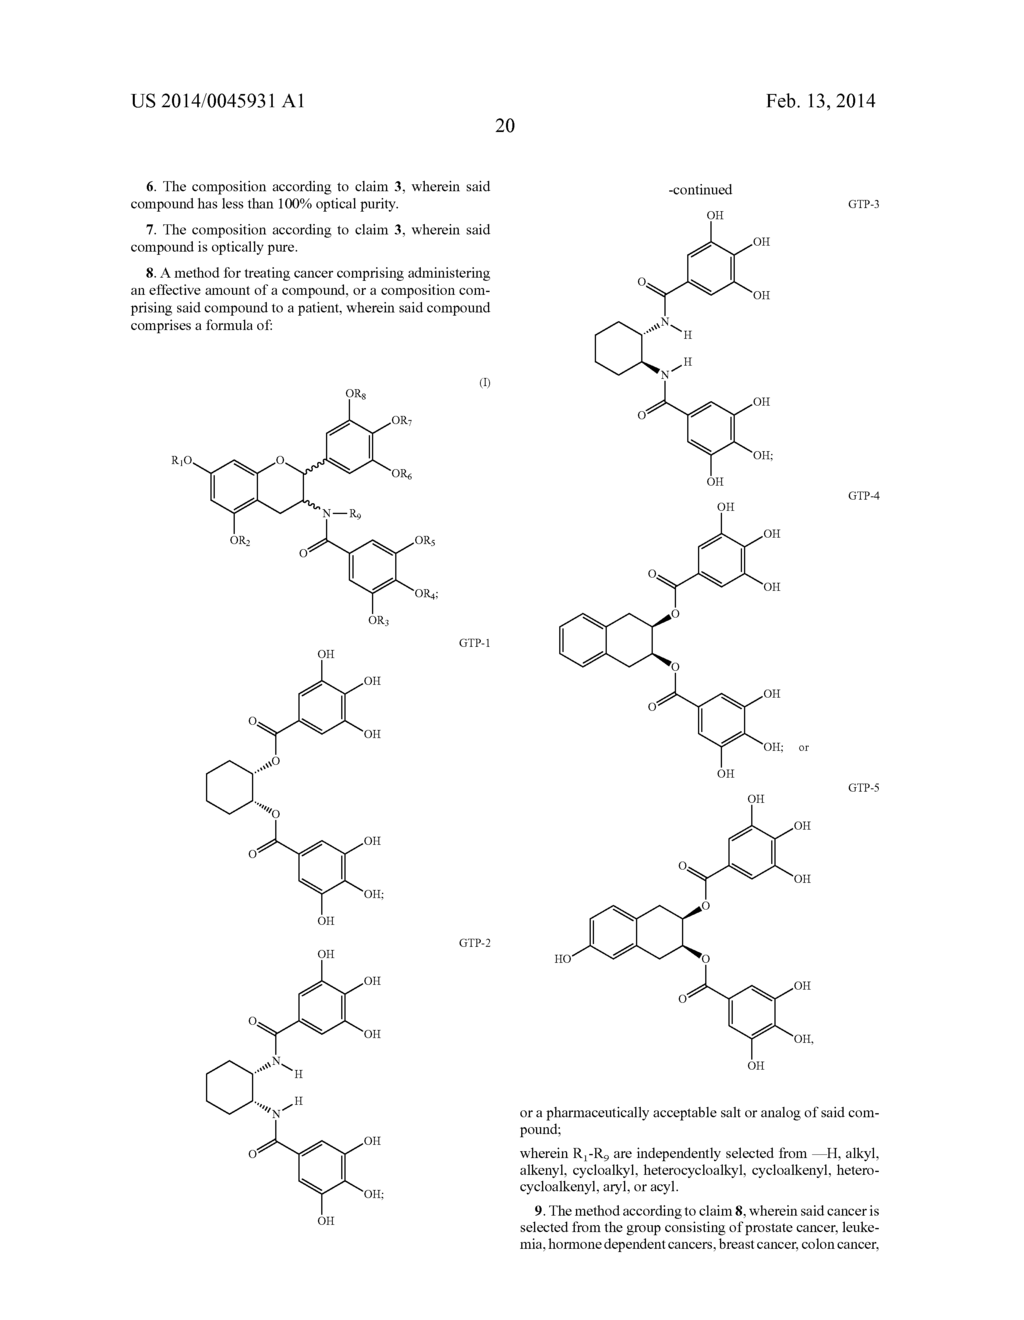 POLYPHENOL PROTEASOME INHIBITORS, SYNTHESIS, AND METHODS OF USE - diagram, schematic, and image 52